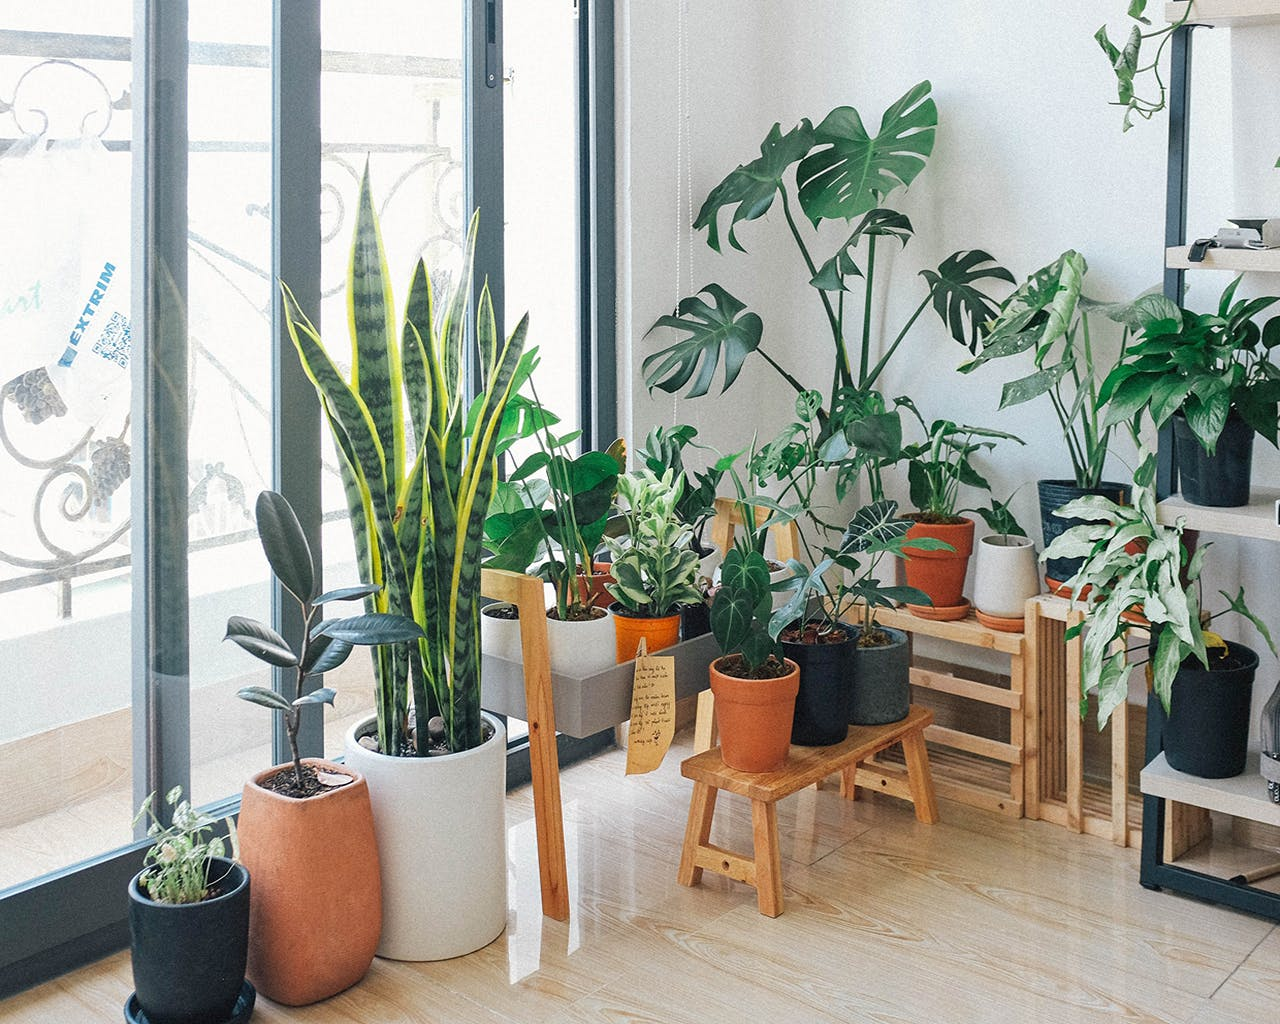 Redecorating? These 7 Indoor Plants Will Make Your Living Room Look 'Sosyal'